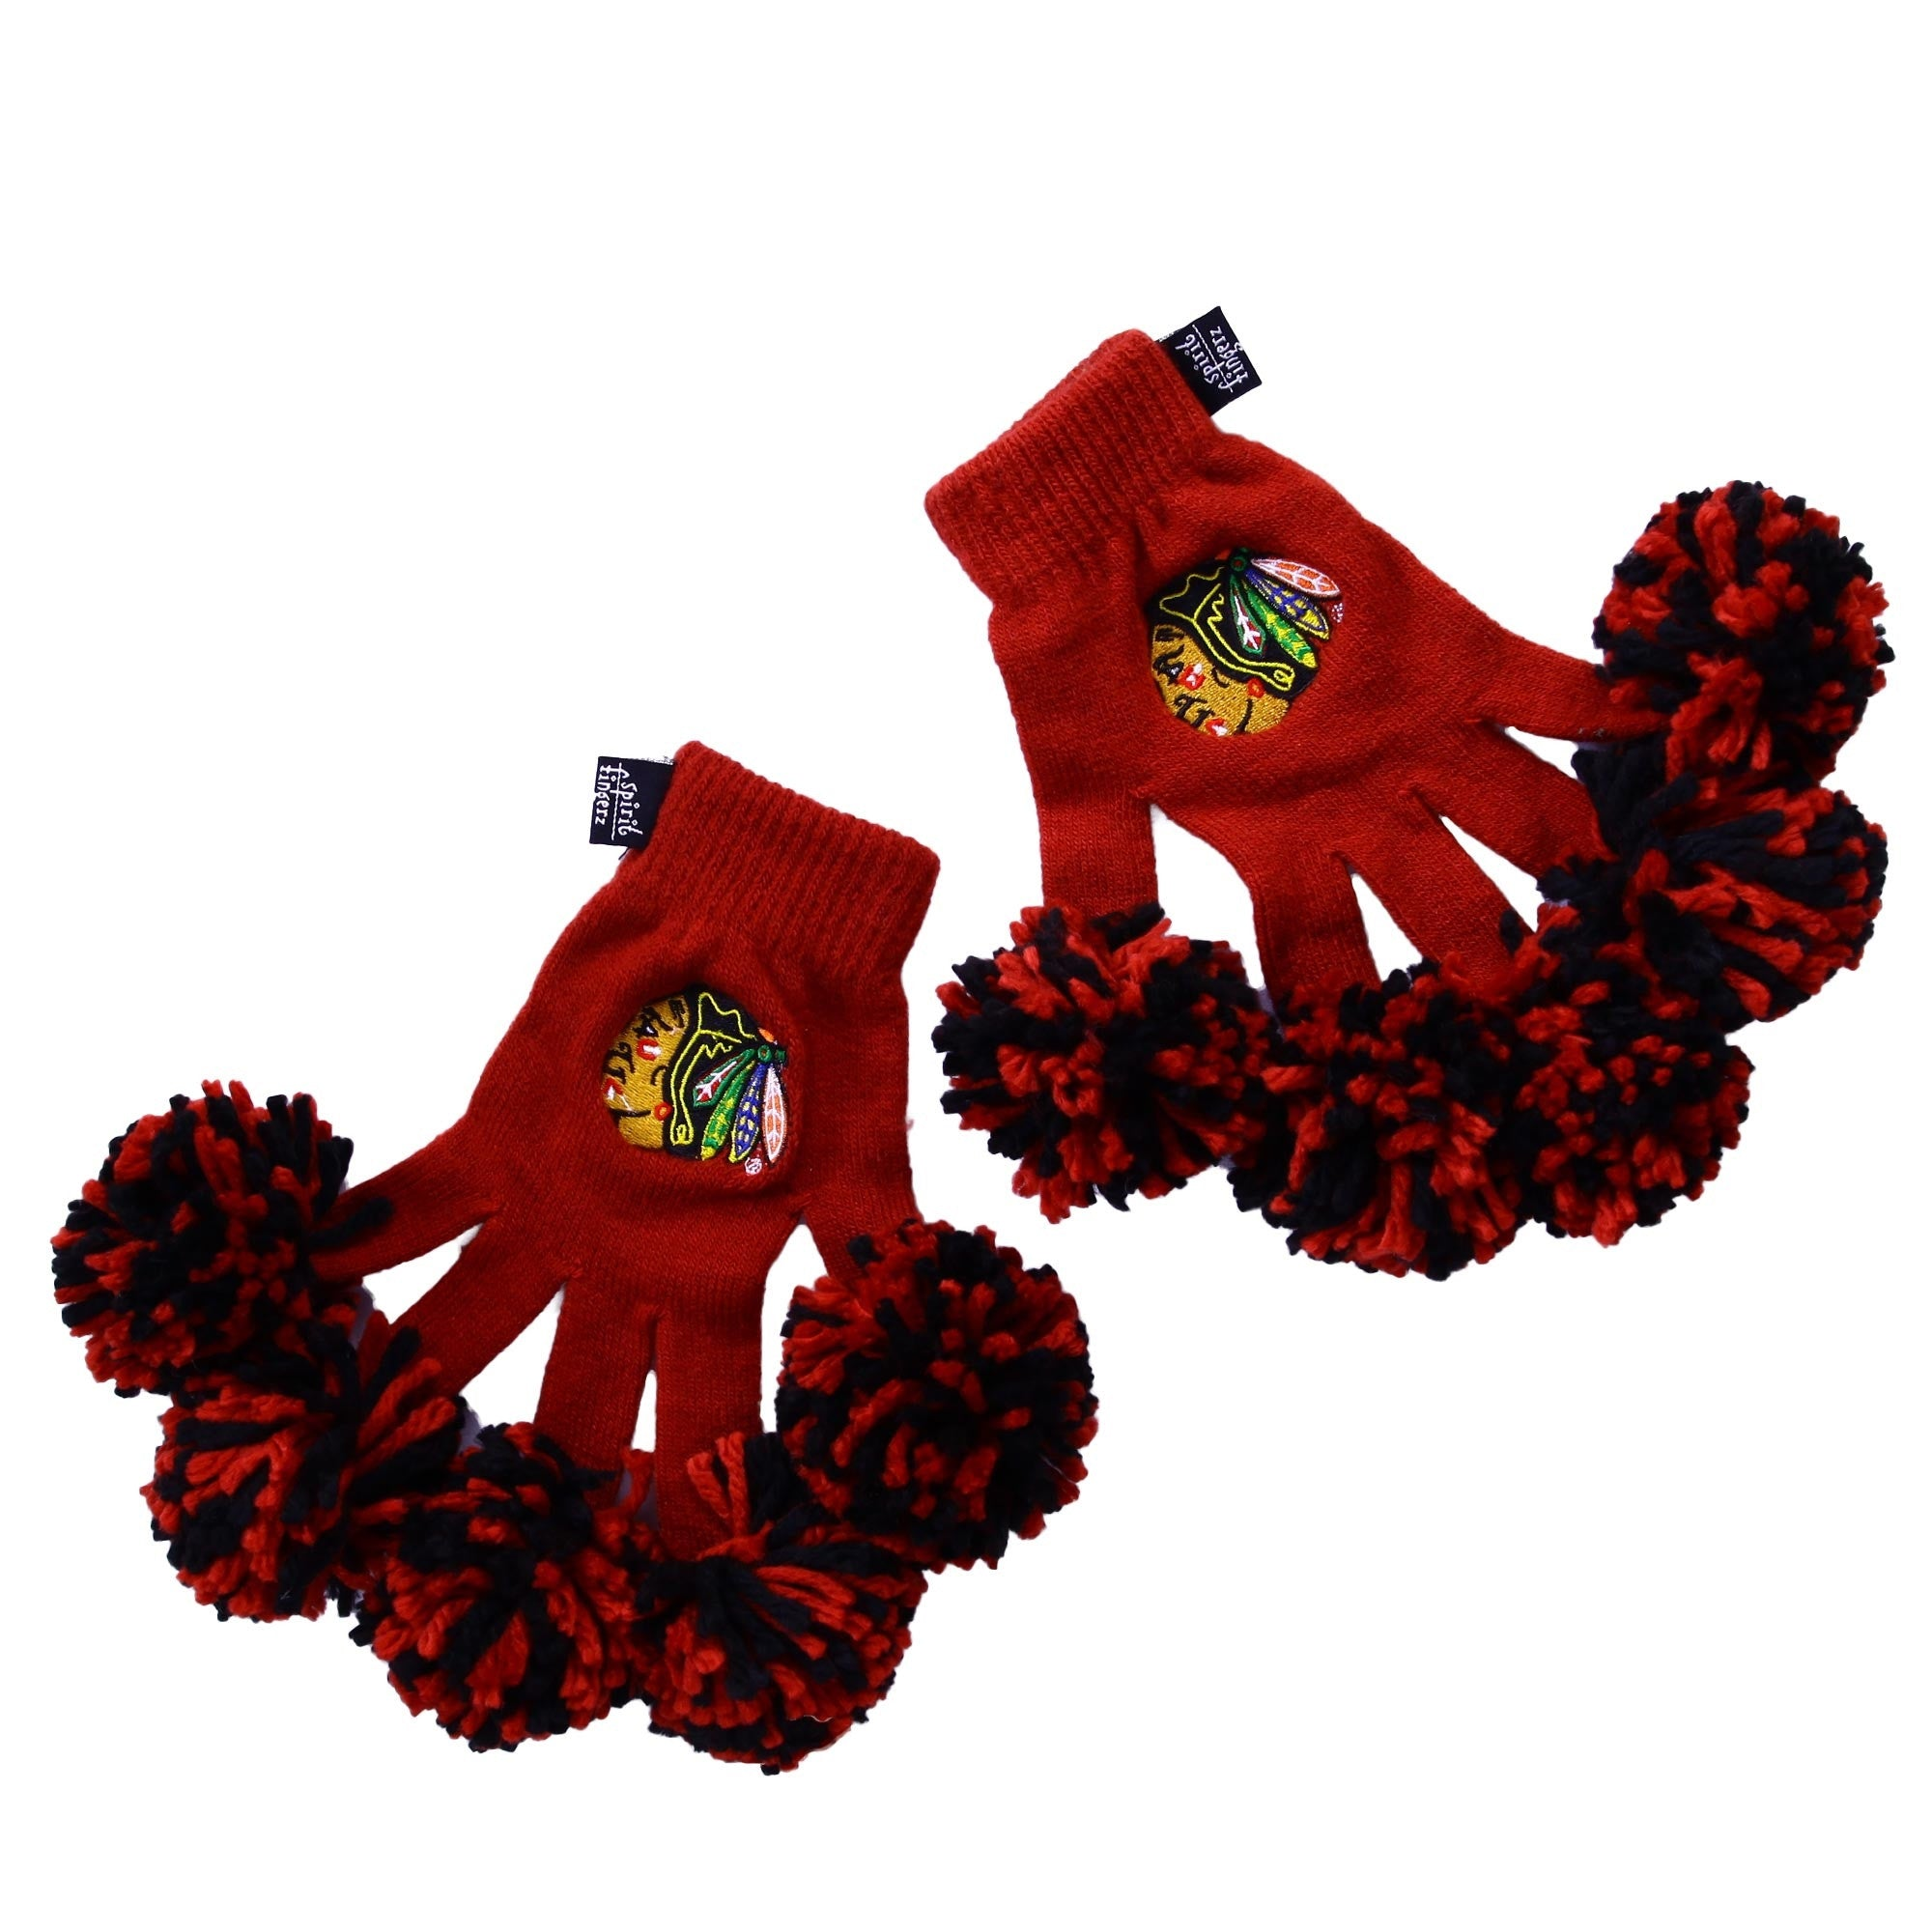 Chicago Blackhawks NHL Spirit Fingerz Cheerleading Pom-Pom Gloves